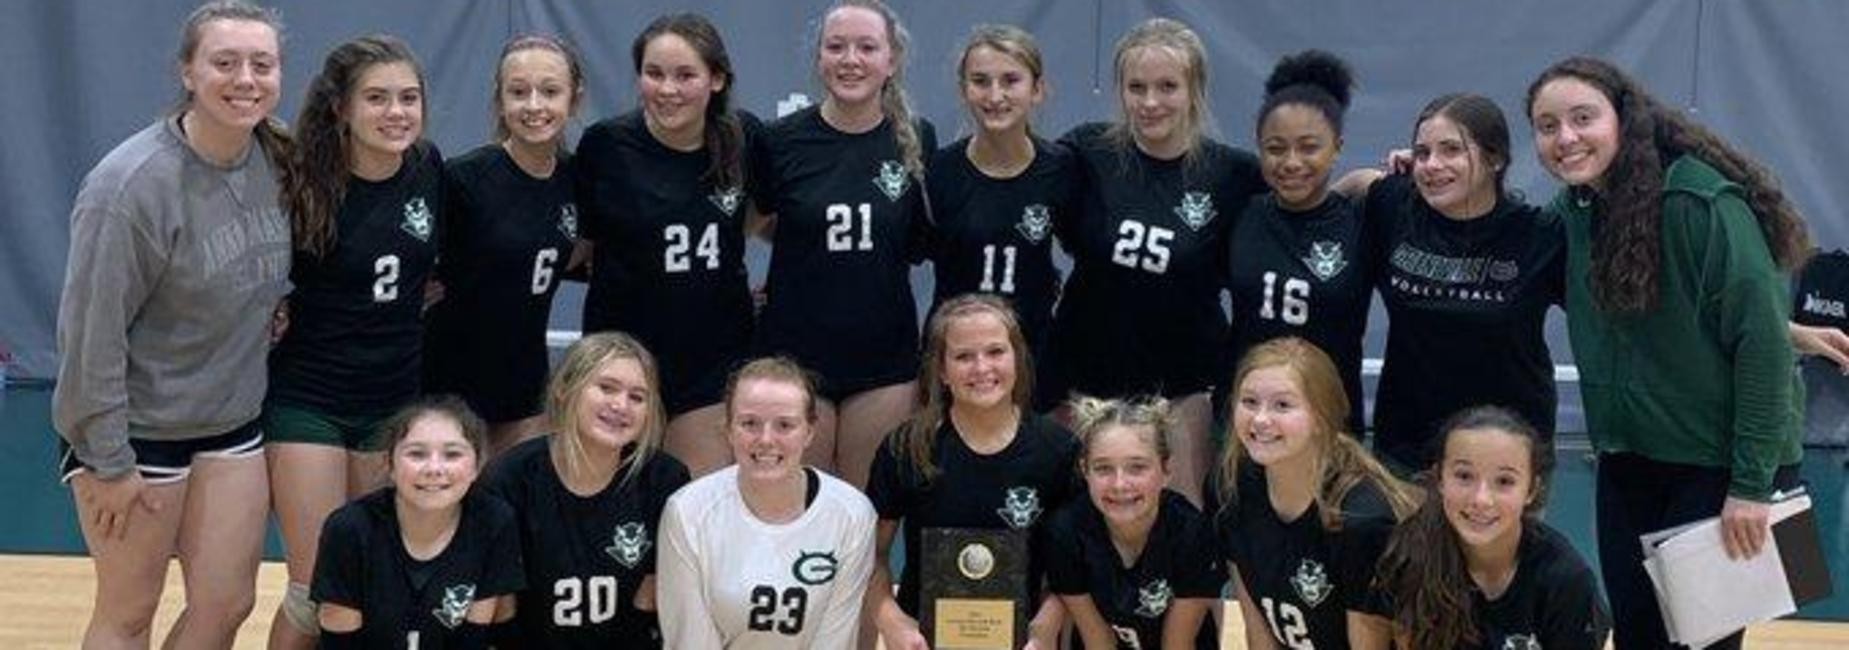 a picture of the girls volleyball team